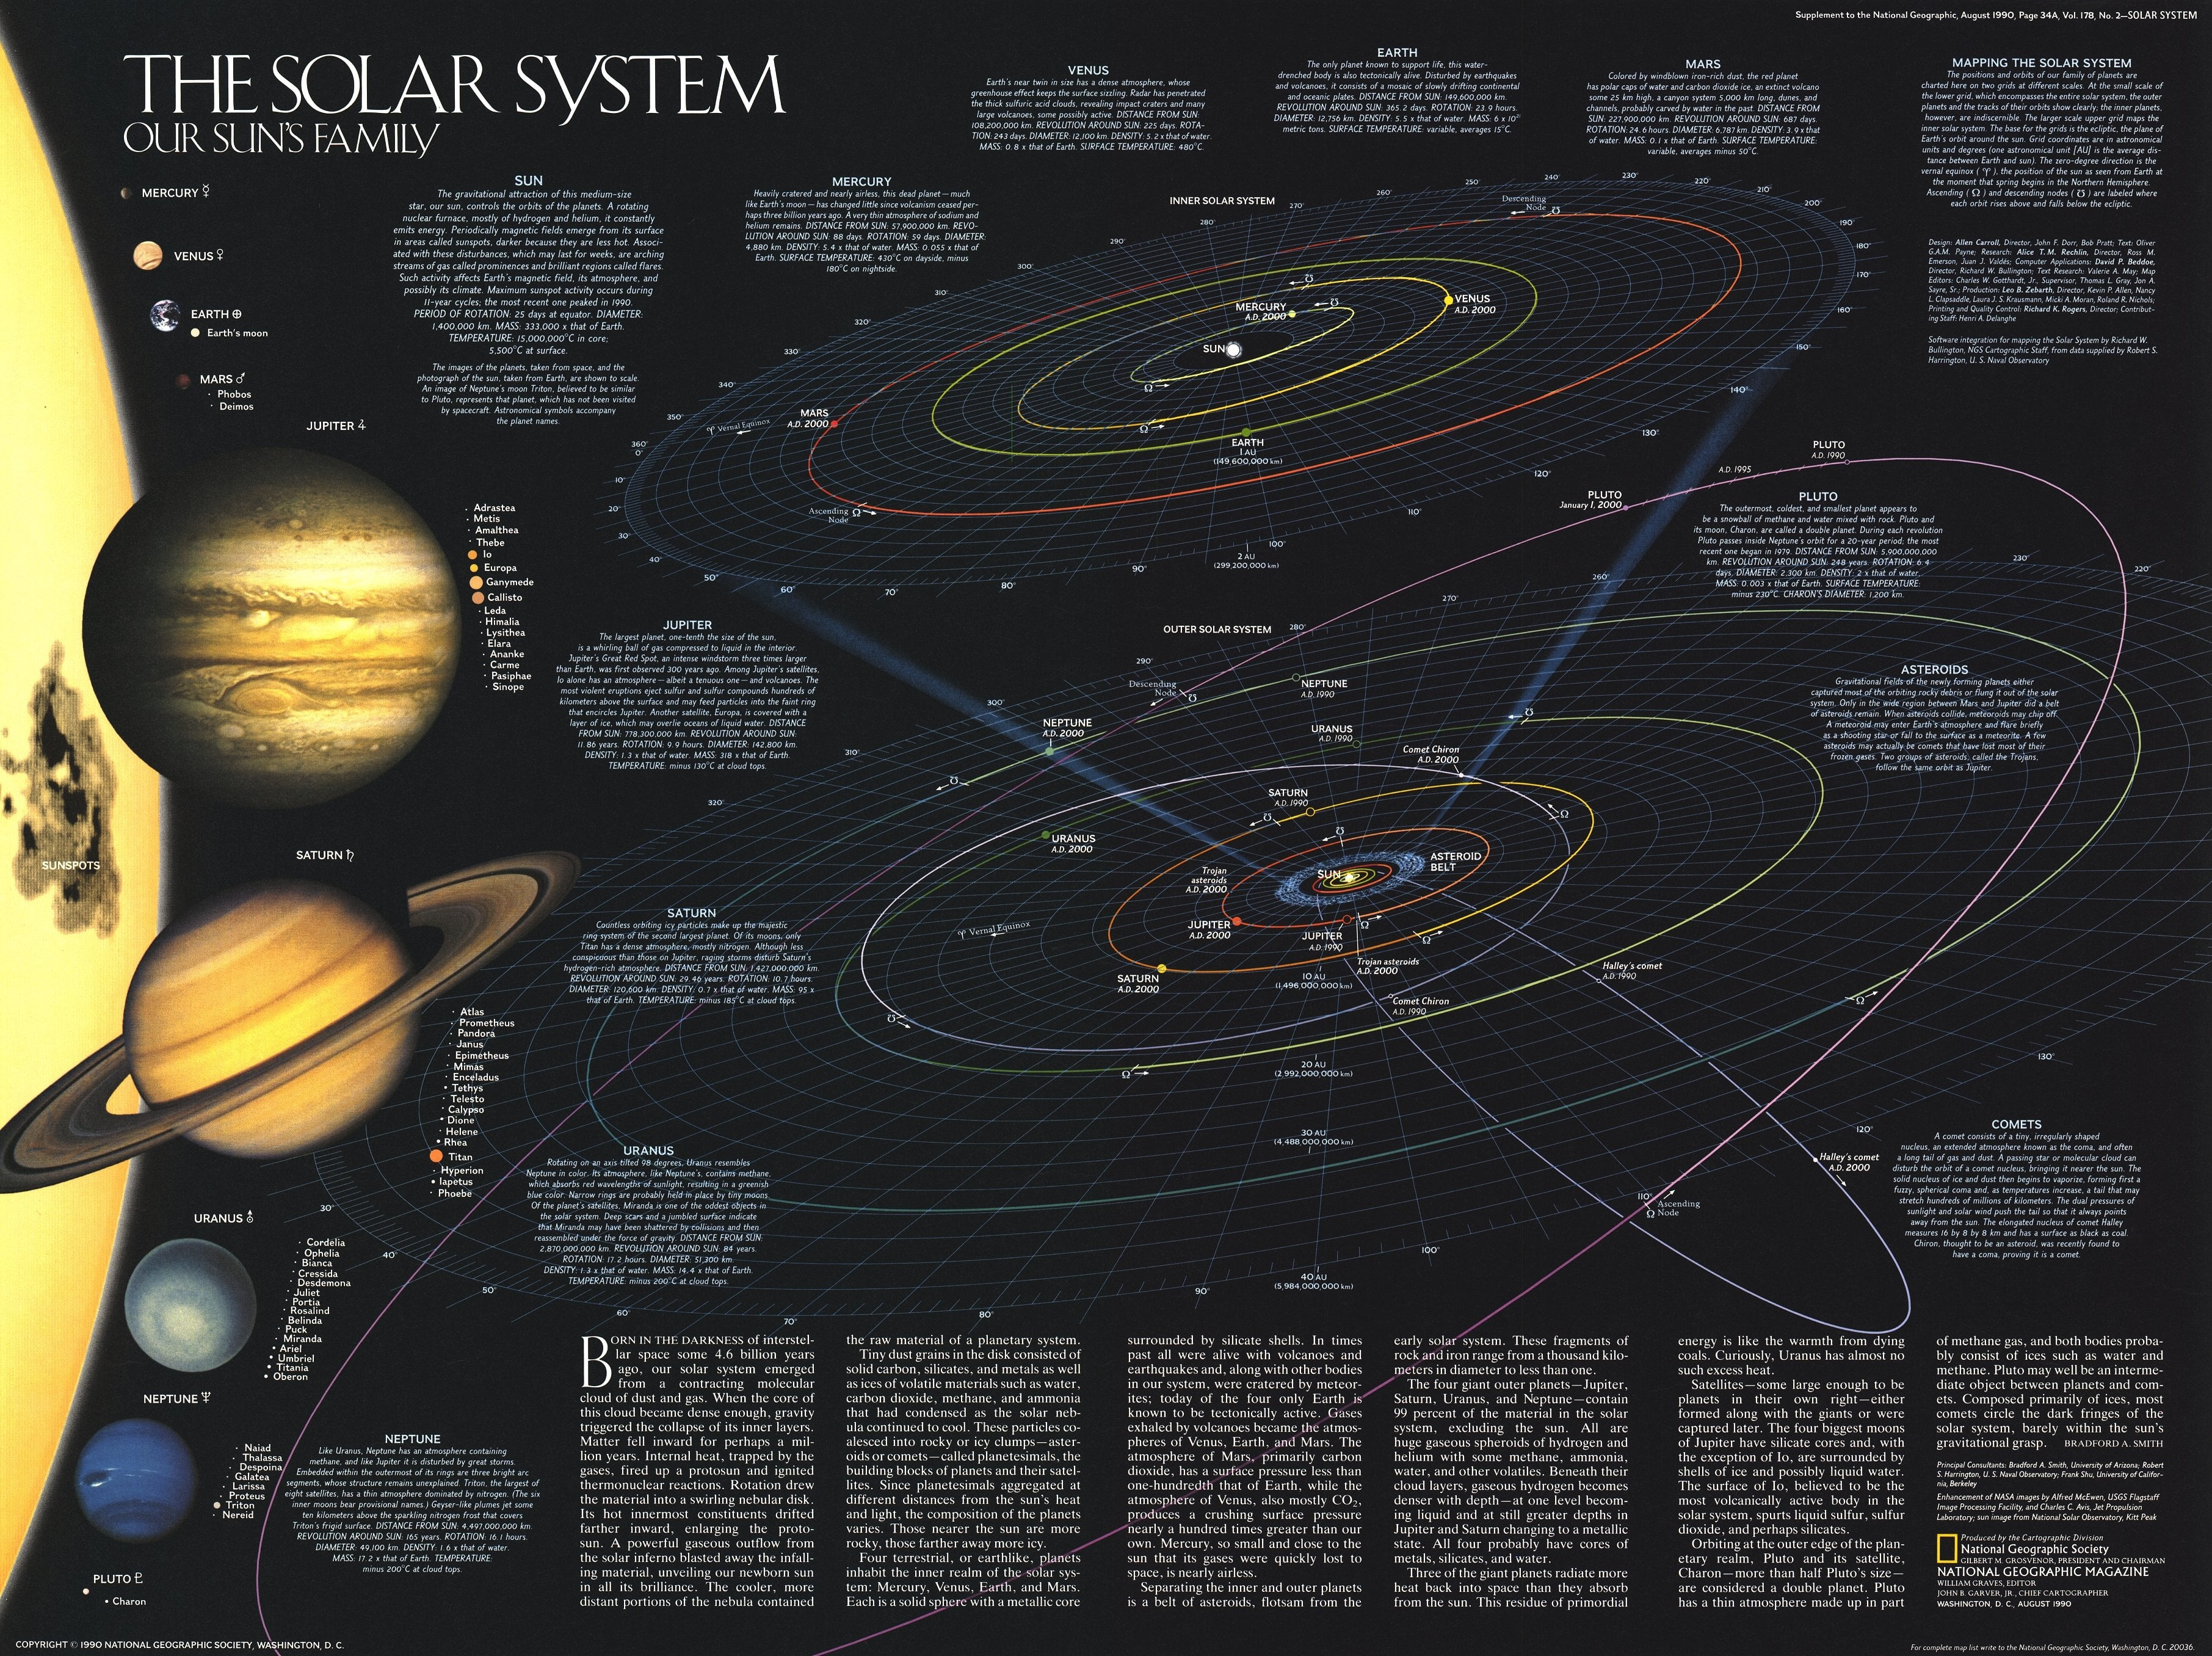 NGS 1990 Solar System Map